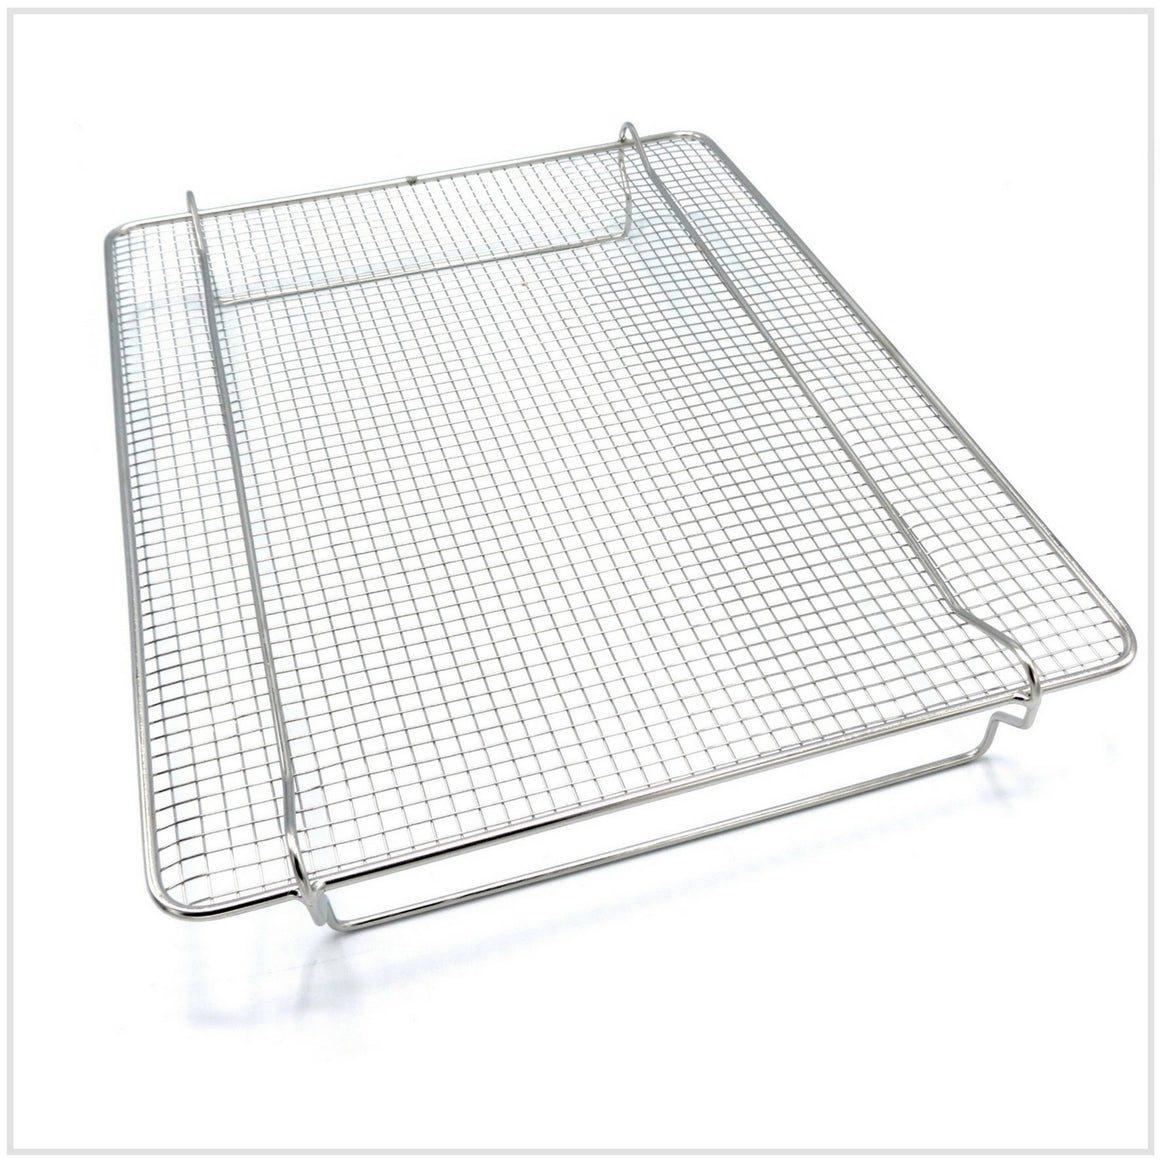 Rectangular Cooling Tray